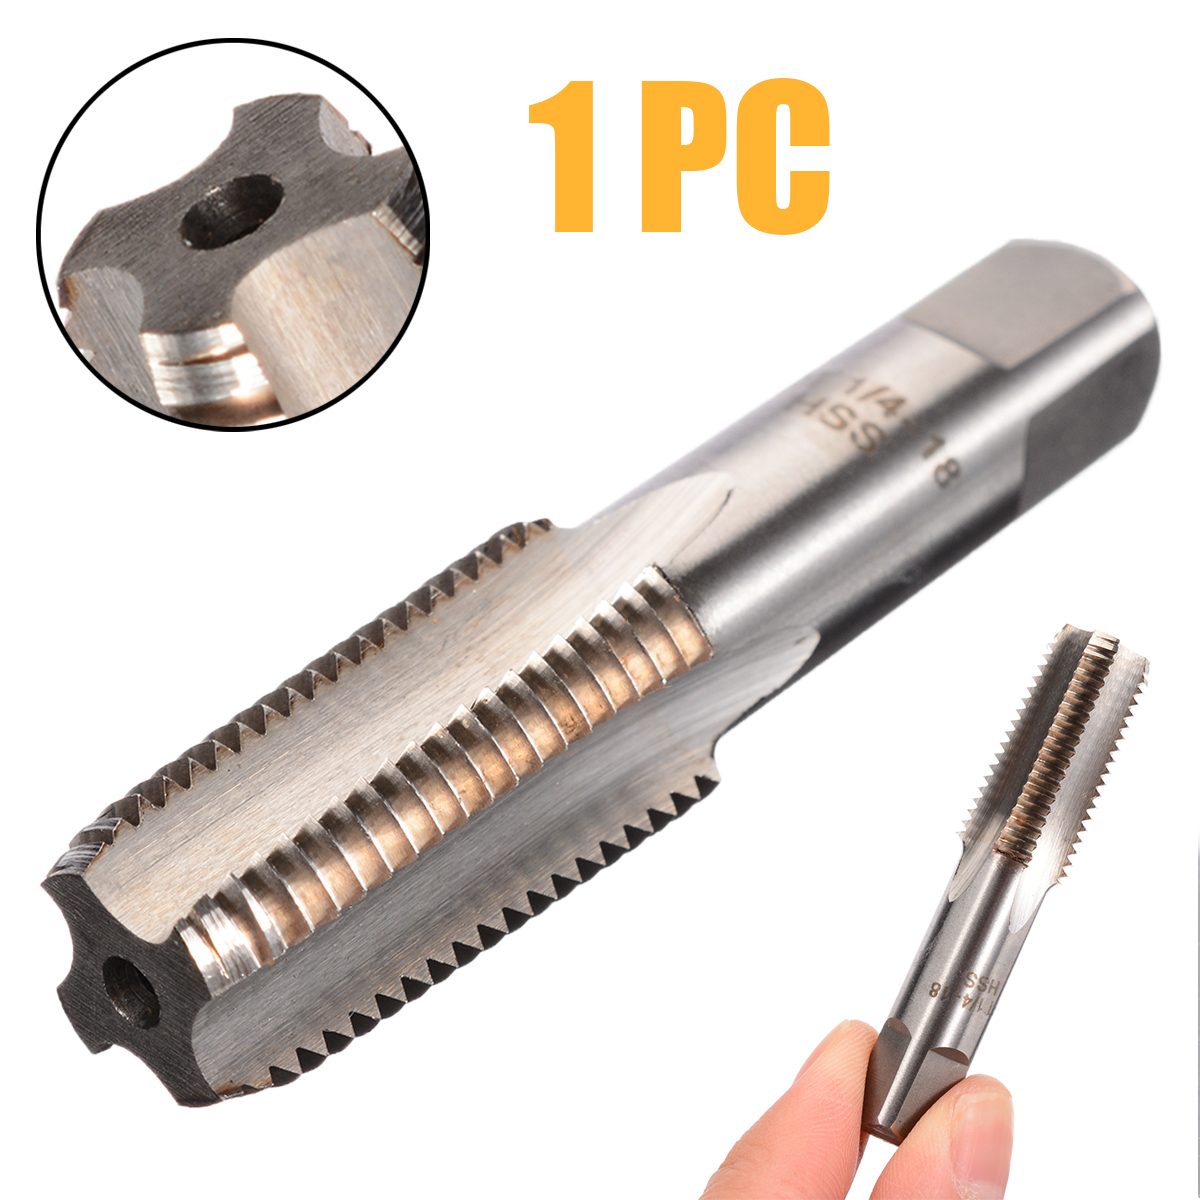 1/4 Inch - 18 NPT Metal Screw Threaded Tap Cutting Hand Tool High Speed Steel Taper Pipe Thread Machine Screw Tap